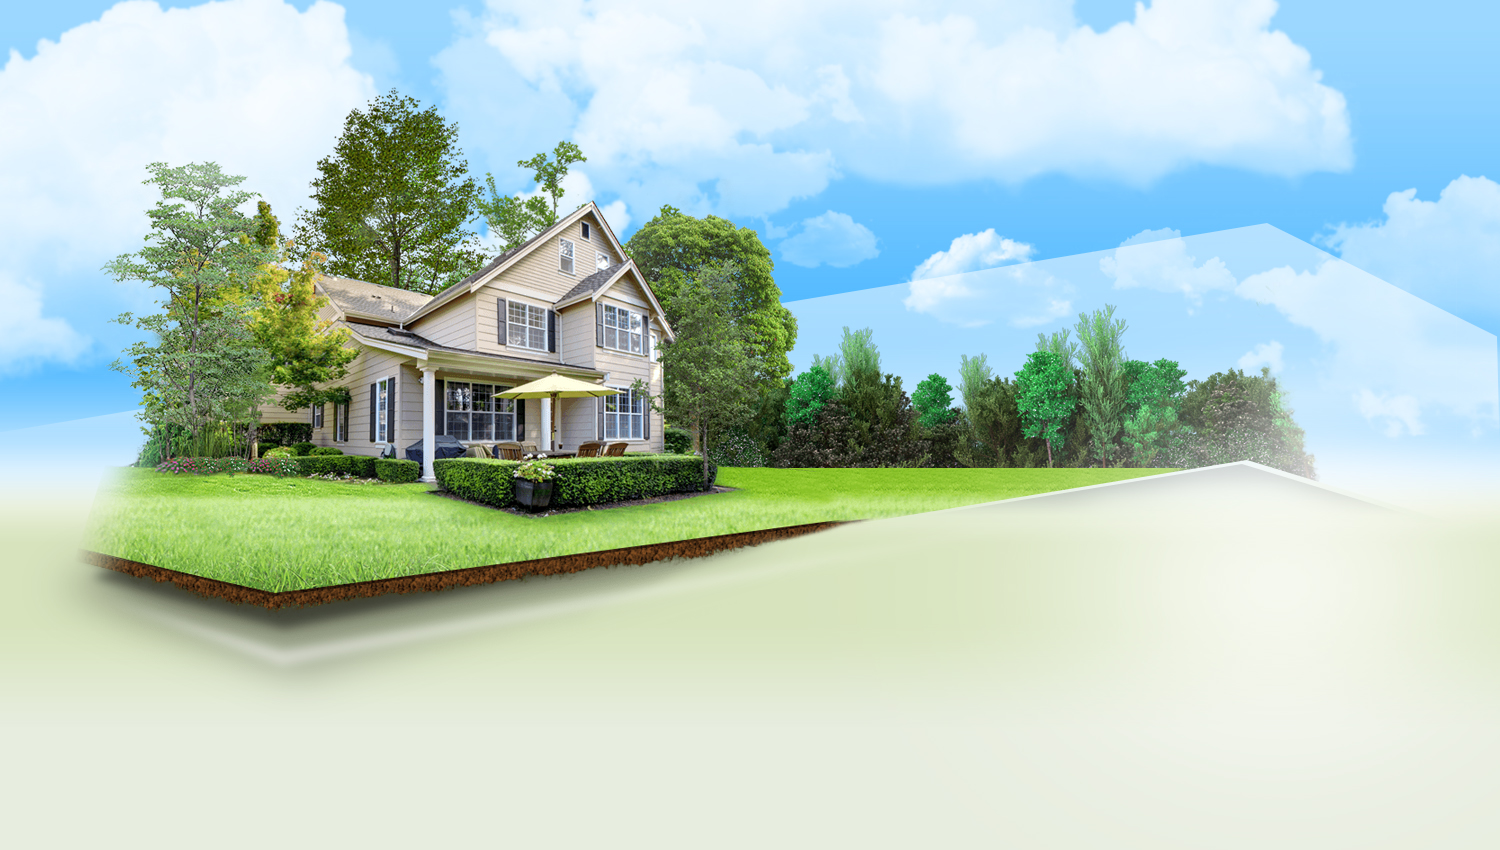 Town and County Real Estate - Homes to Buy and Homes for Sale in the